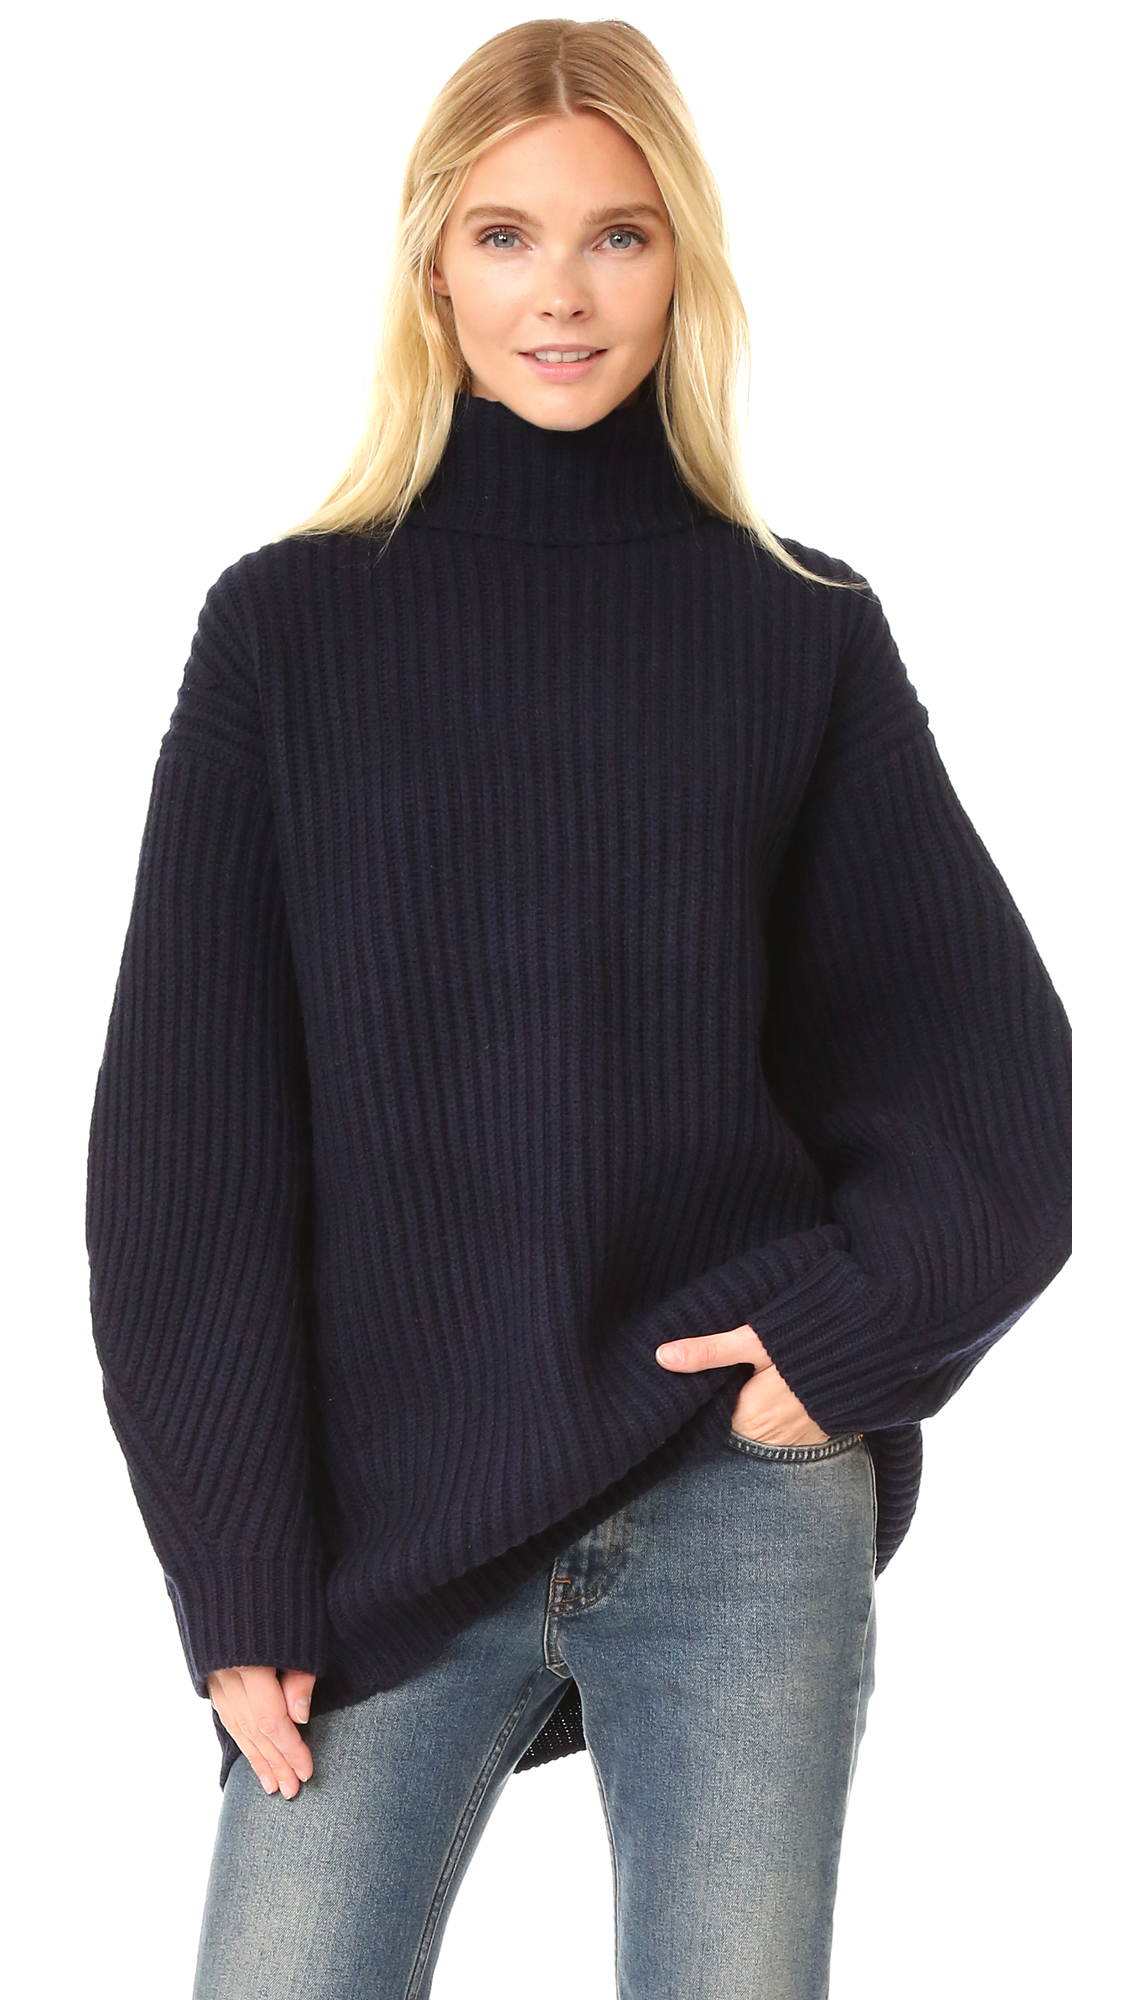 A ribbed, oversized Acne Studios sweater with a cozy mockneck profile. Boxy, tapered long sleeves. Uneven hem. Fabric: Thick, ribbed knit. 100% wool. Hand wash. Imported, China. Measurements Length: 30in / 76cm, from shoulder Measurements from size S.